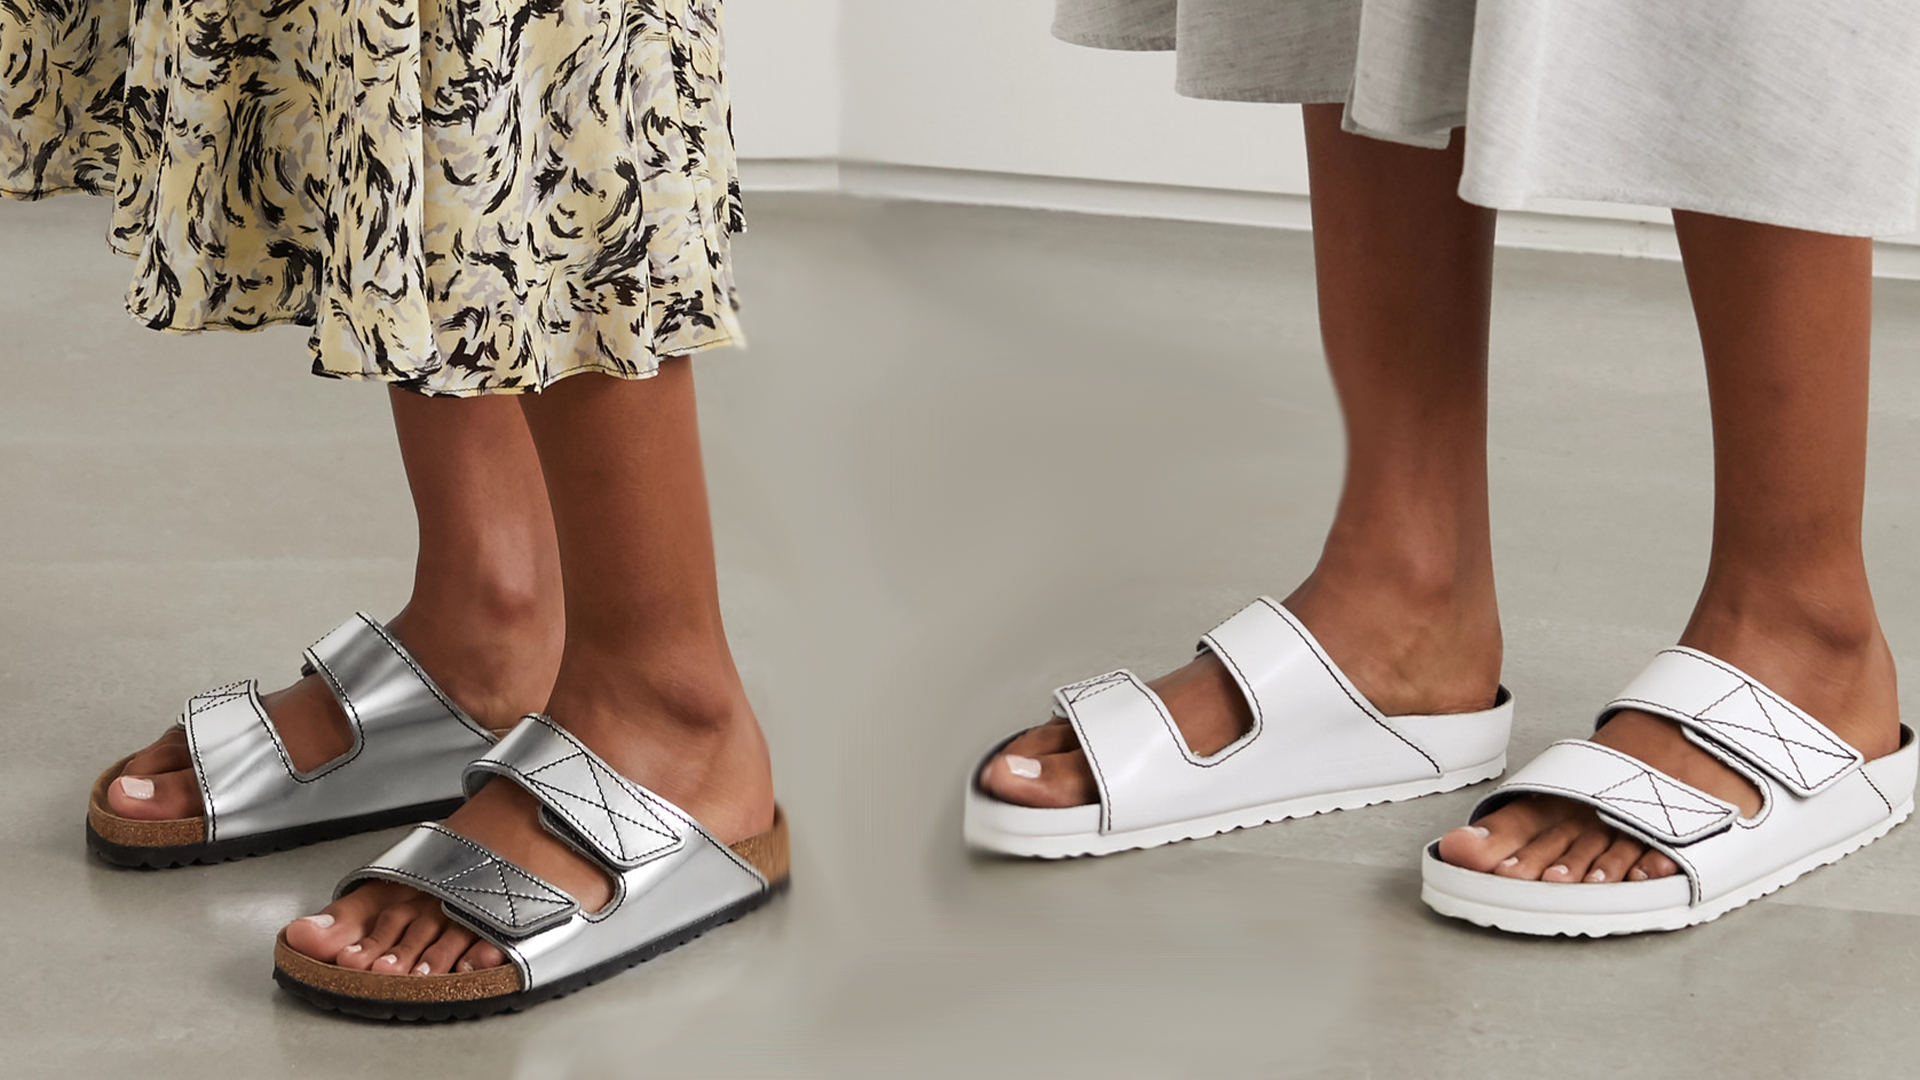 Birkenstock and Proenza Schouler Teamed Up to Create Our Dream Spring Sandal Collection